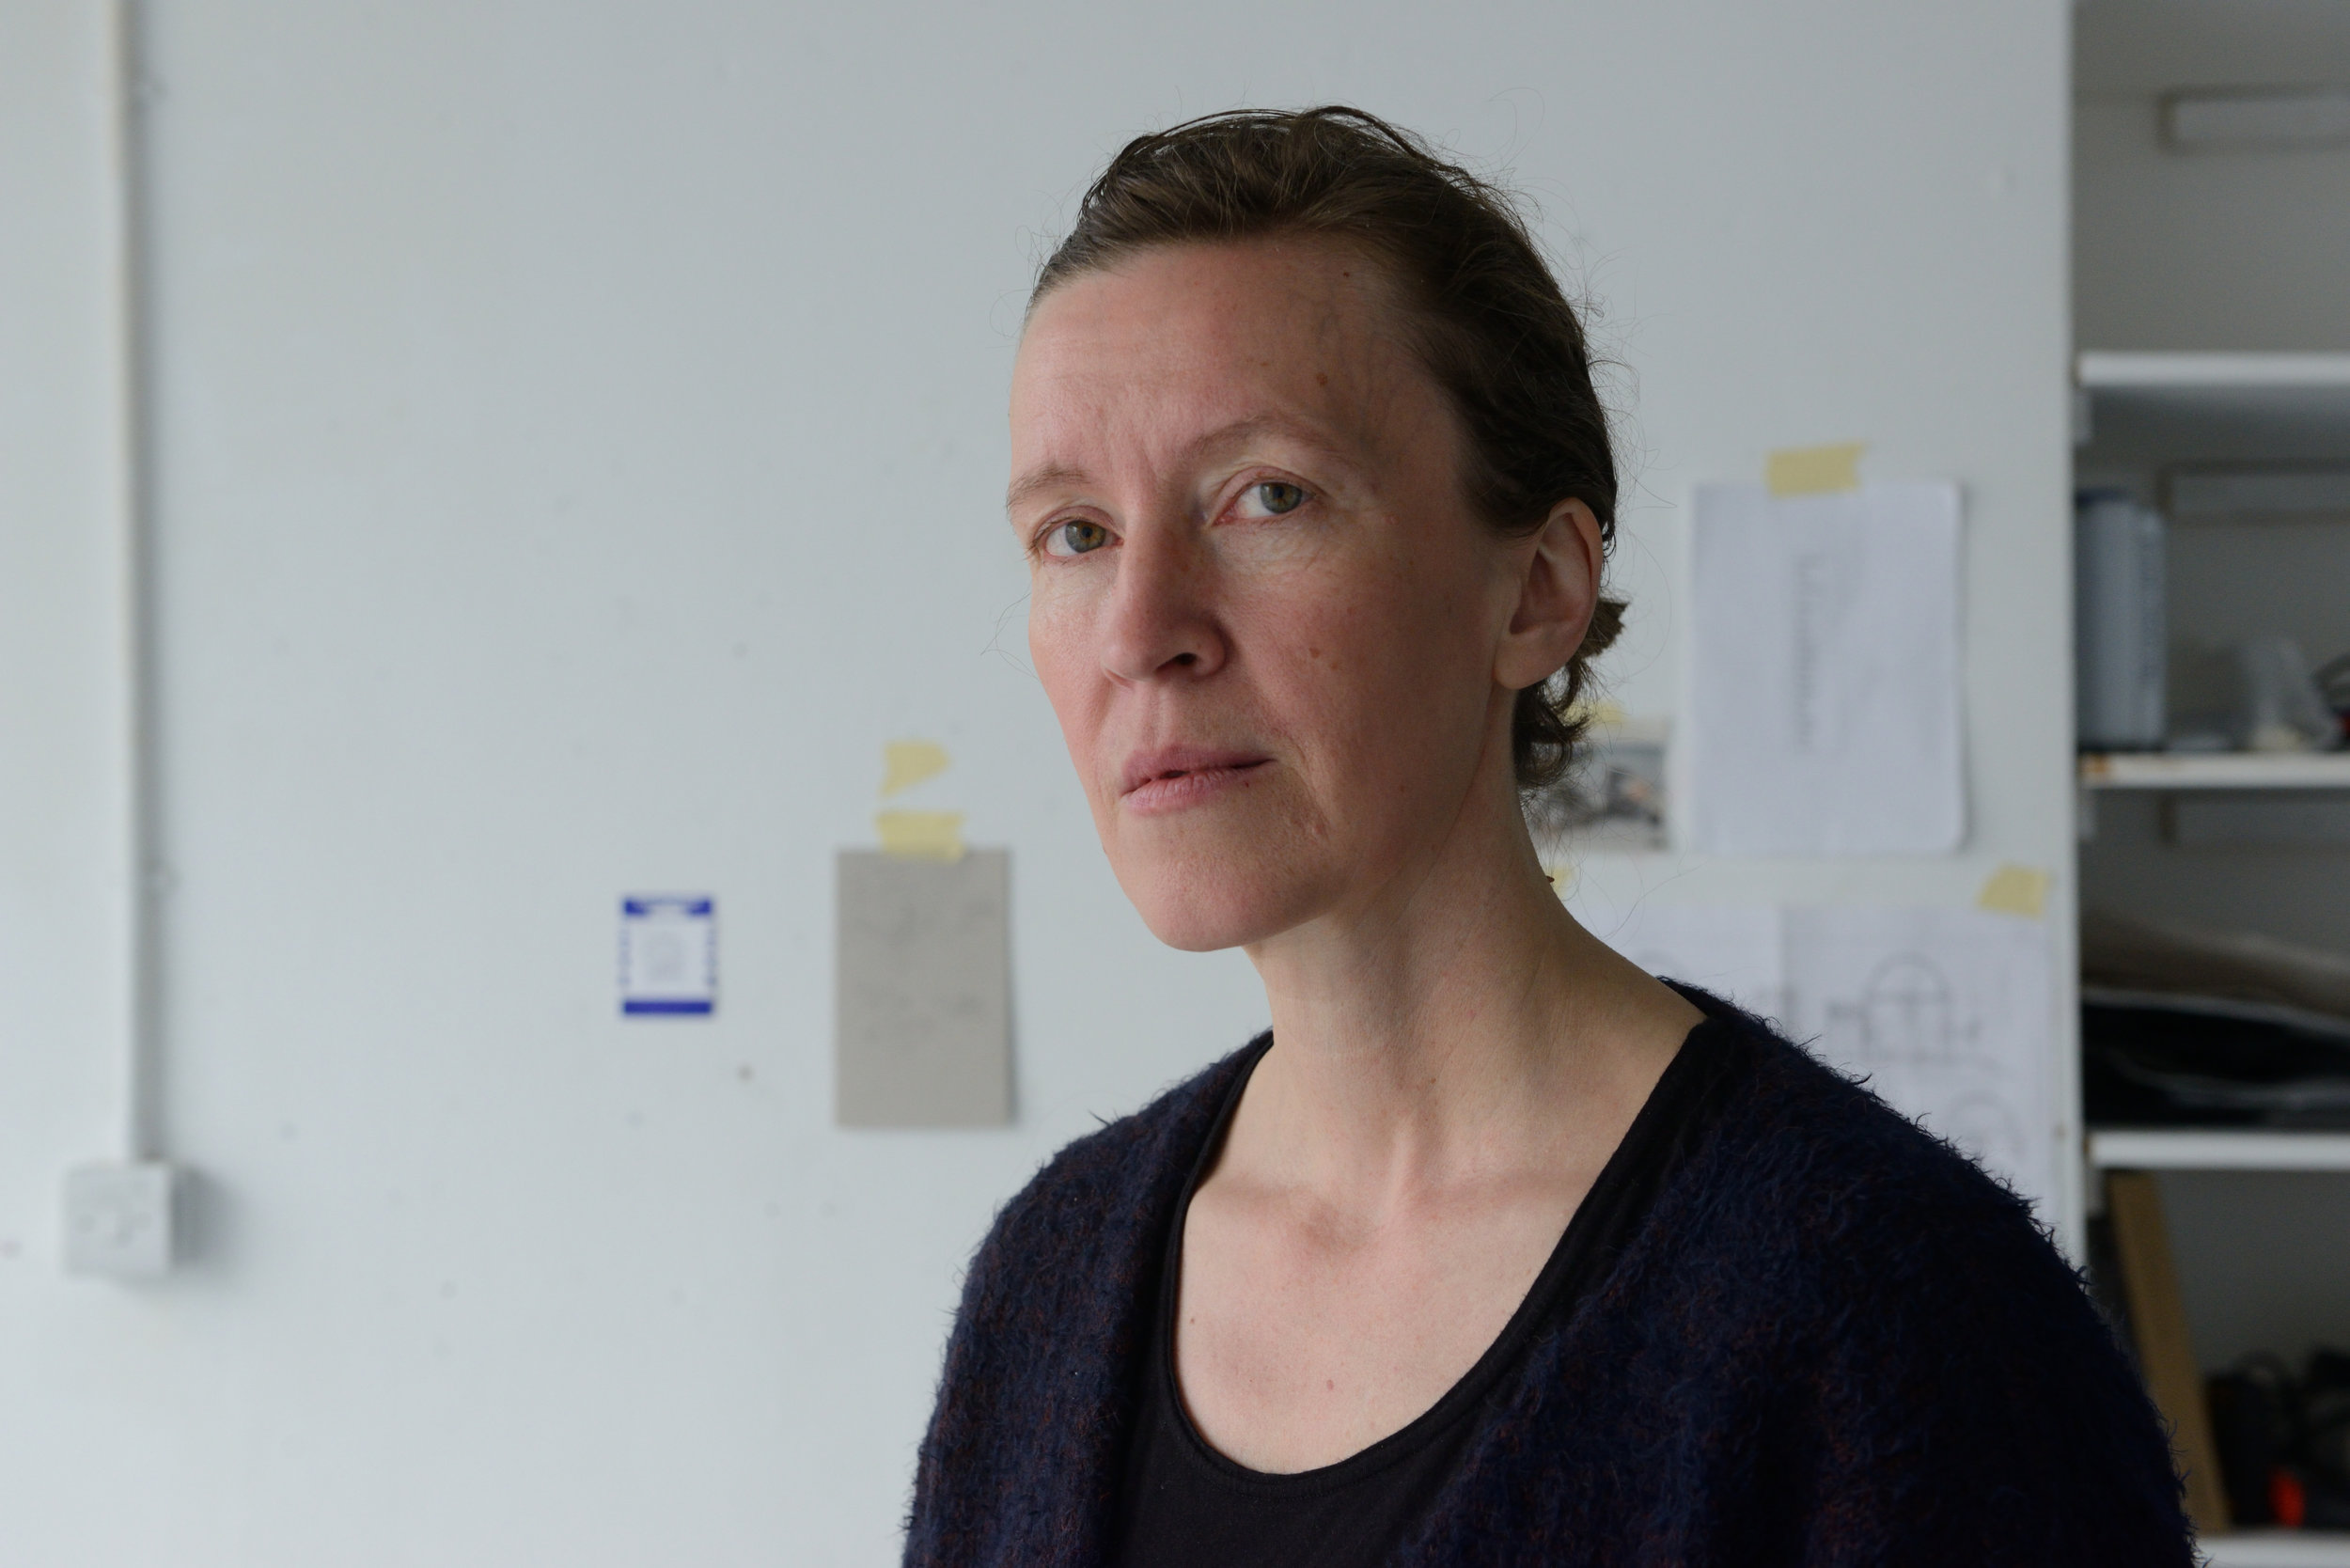 Hanna Haaslahti in the studio, photo by AK Purkiss